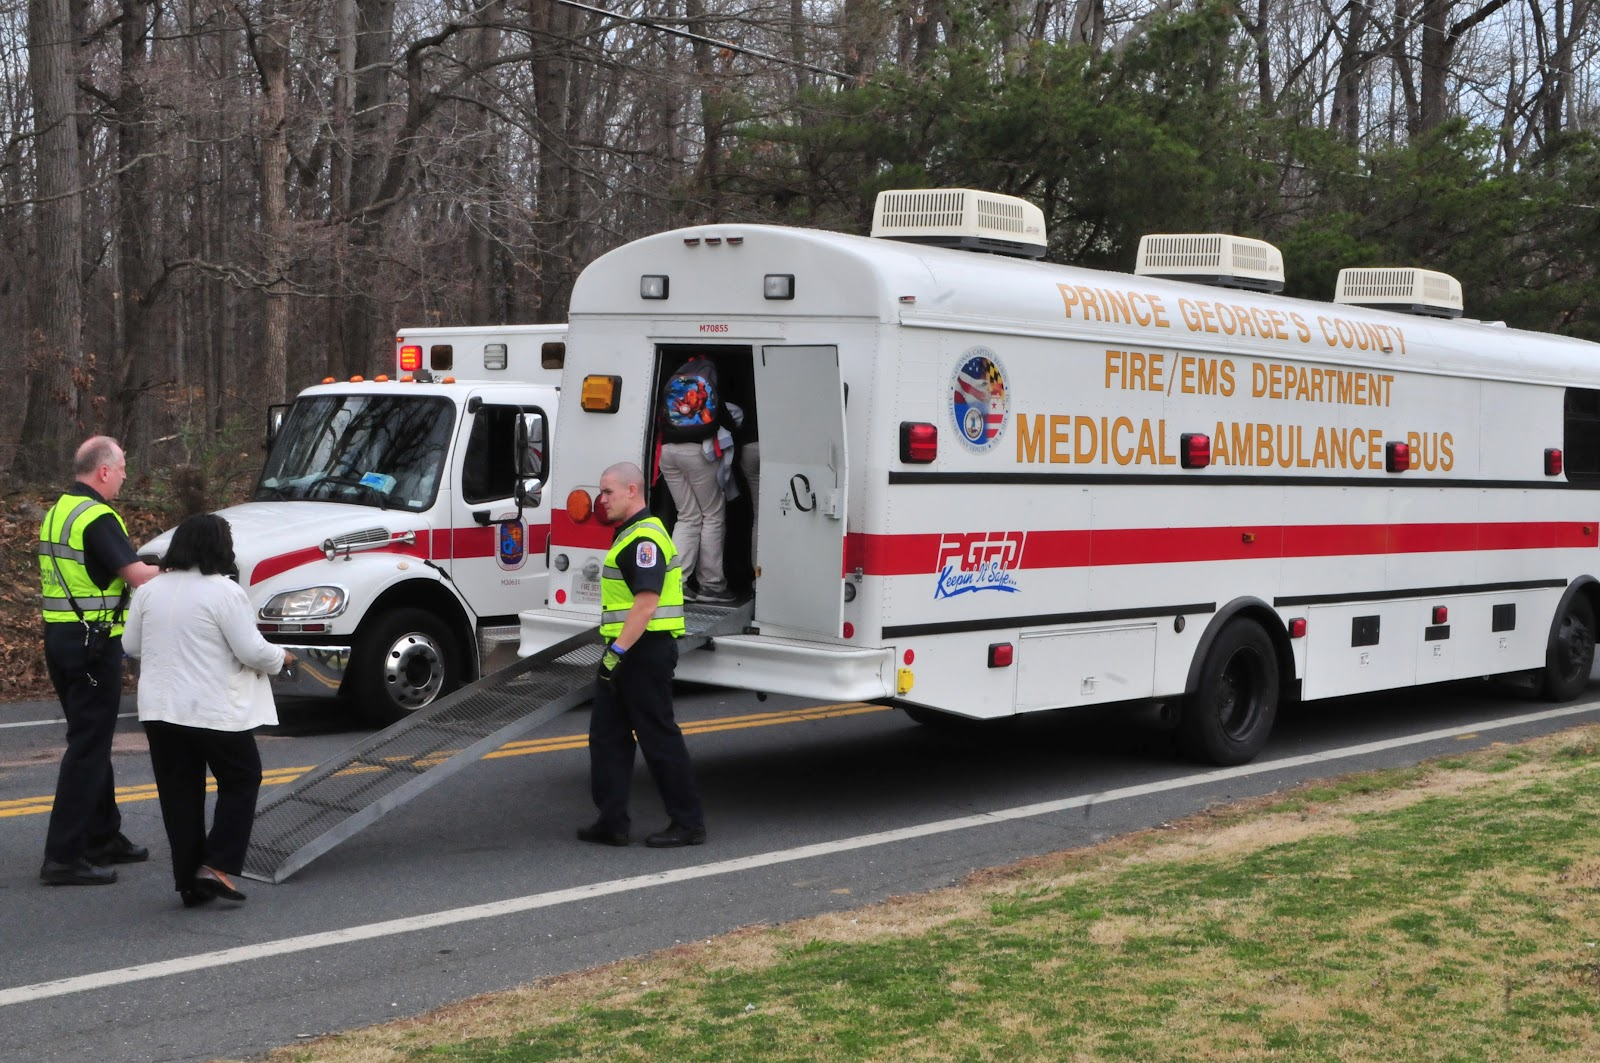 Prince George's County Fire/EMS Department: School Bus ...